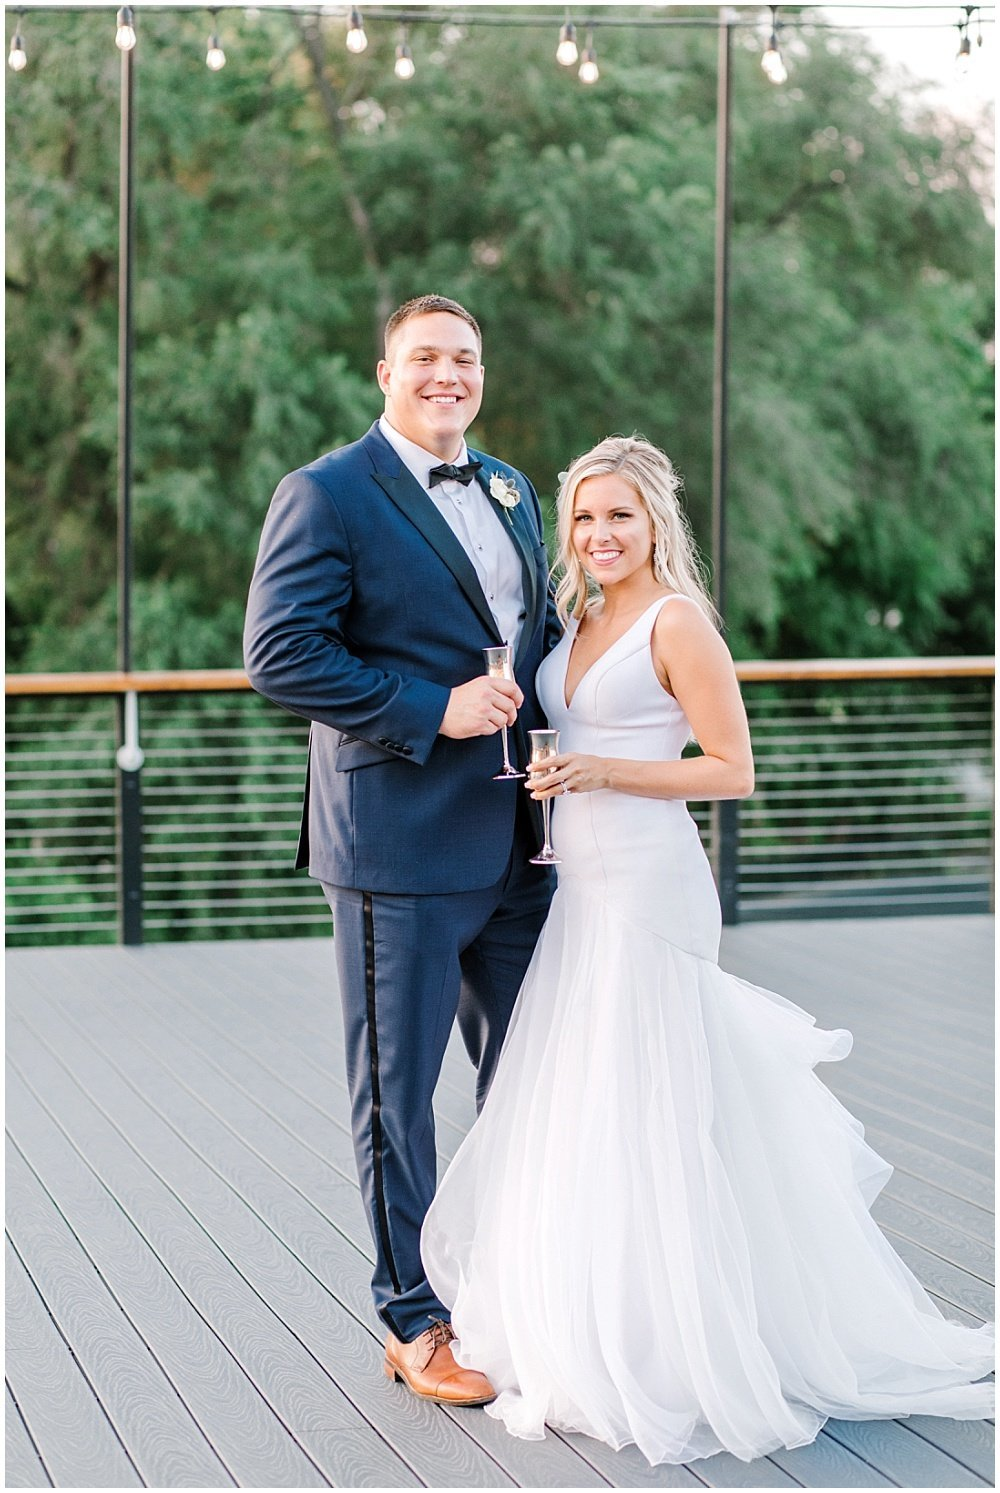 NFL-Player-Nick-Martin-Indianapolis-Indiana-Wedding-The-Knot-Featured-Jessica-Dum-Wedding-Coordination-photo__0034